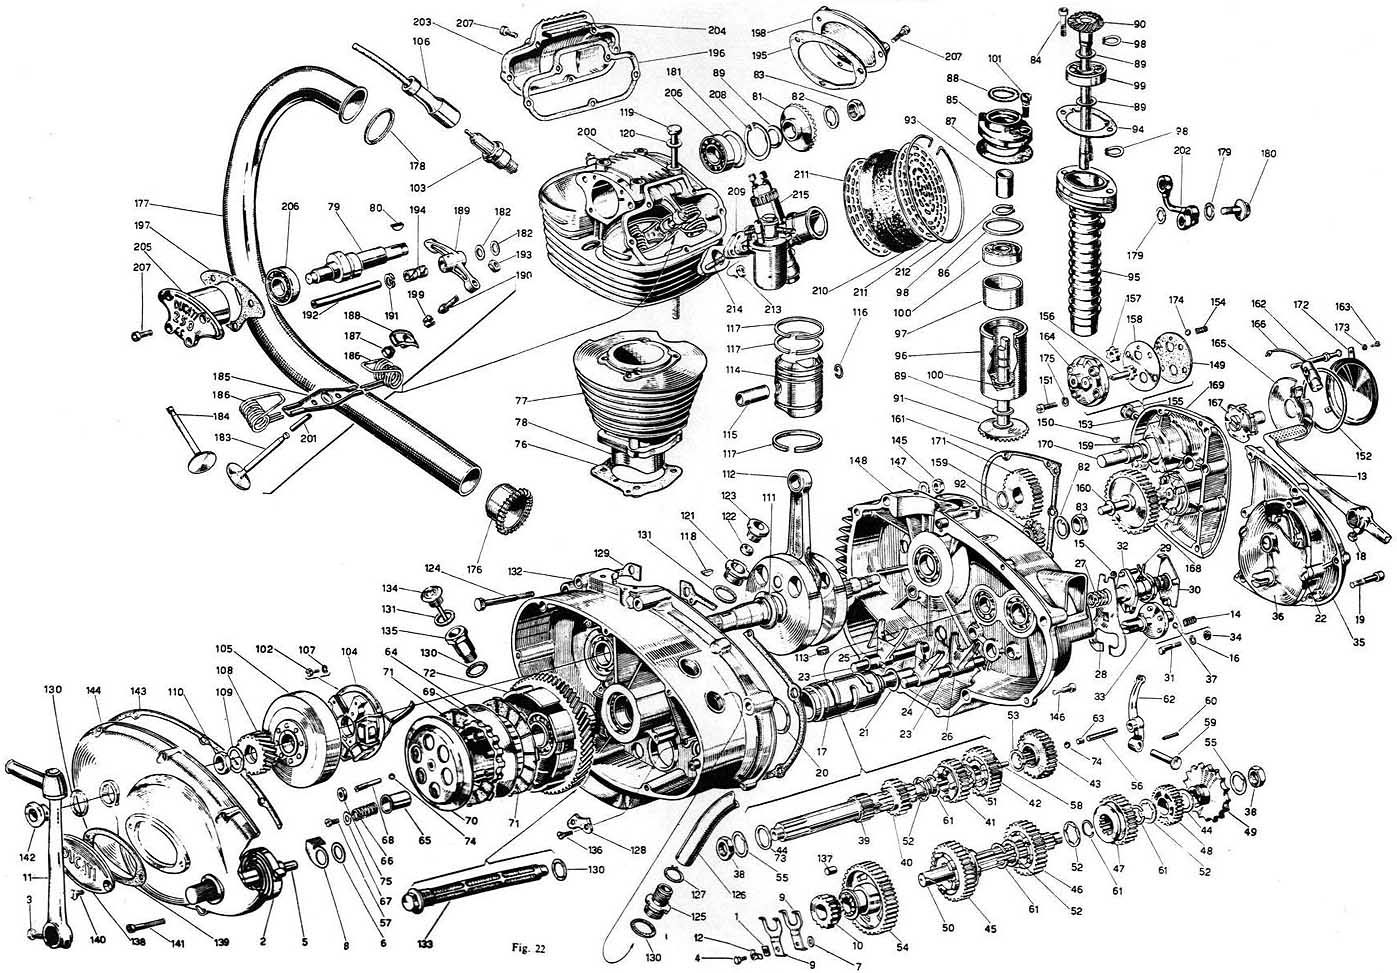 ducati engine schematic blueprints artworks ducati engine schematic blueprints artworks ducati and classic